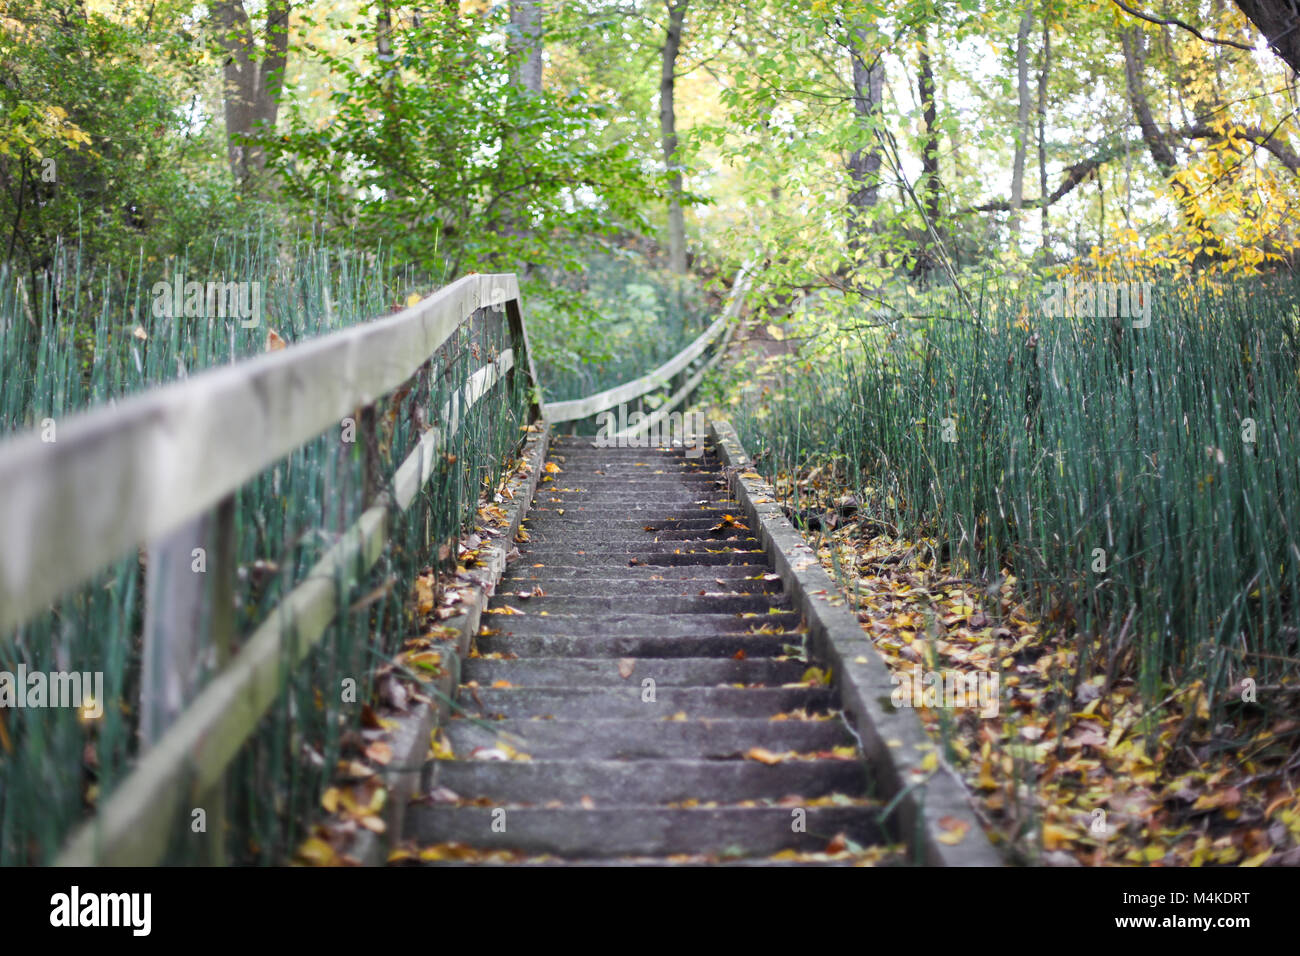 Wooden stairs with leading lines in the fall surrounded by green foliage - Stock Image